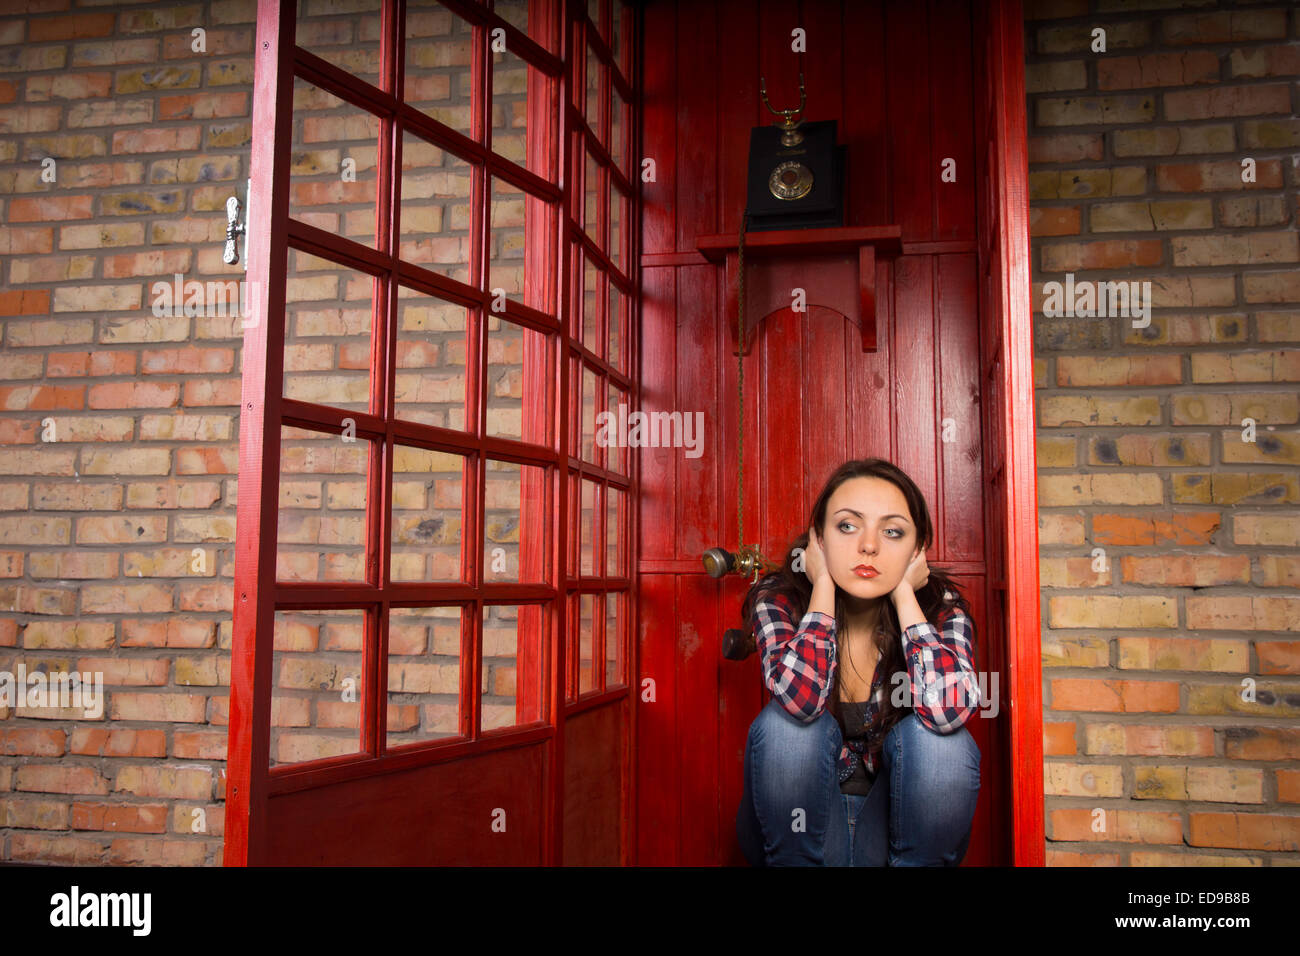 Troubled Young Woman with Hands Over Ears Crouching in Red Telephone Booth with Open Door - Stock Image